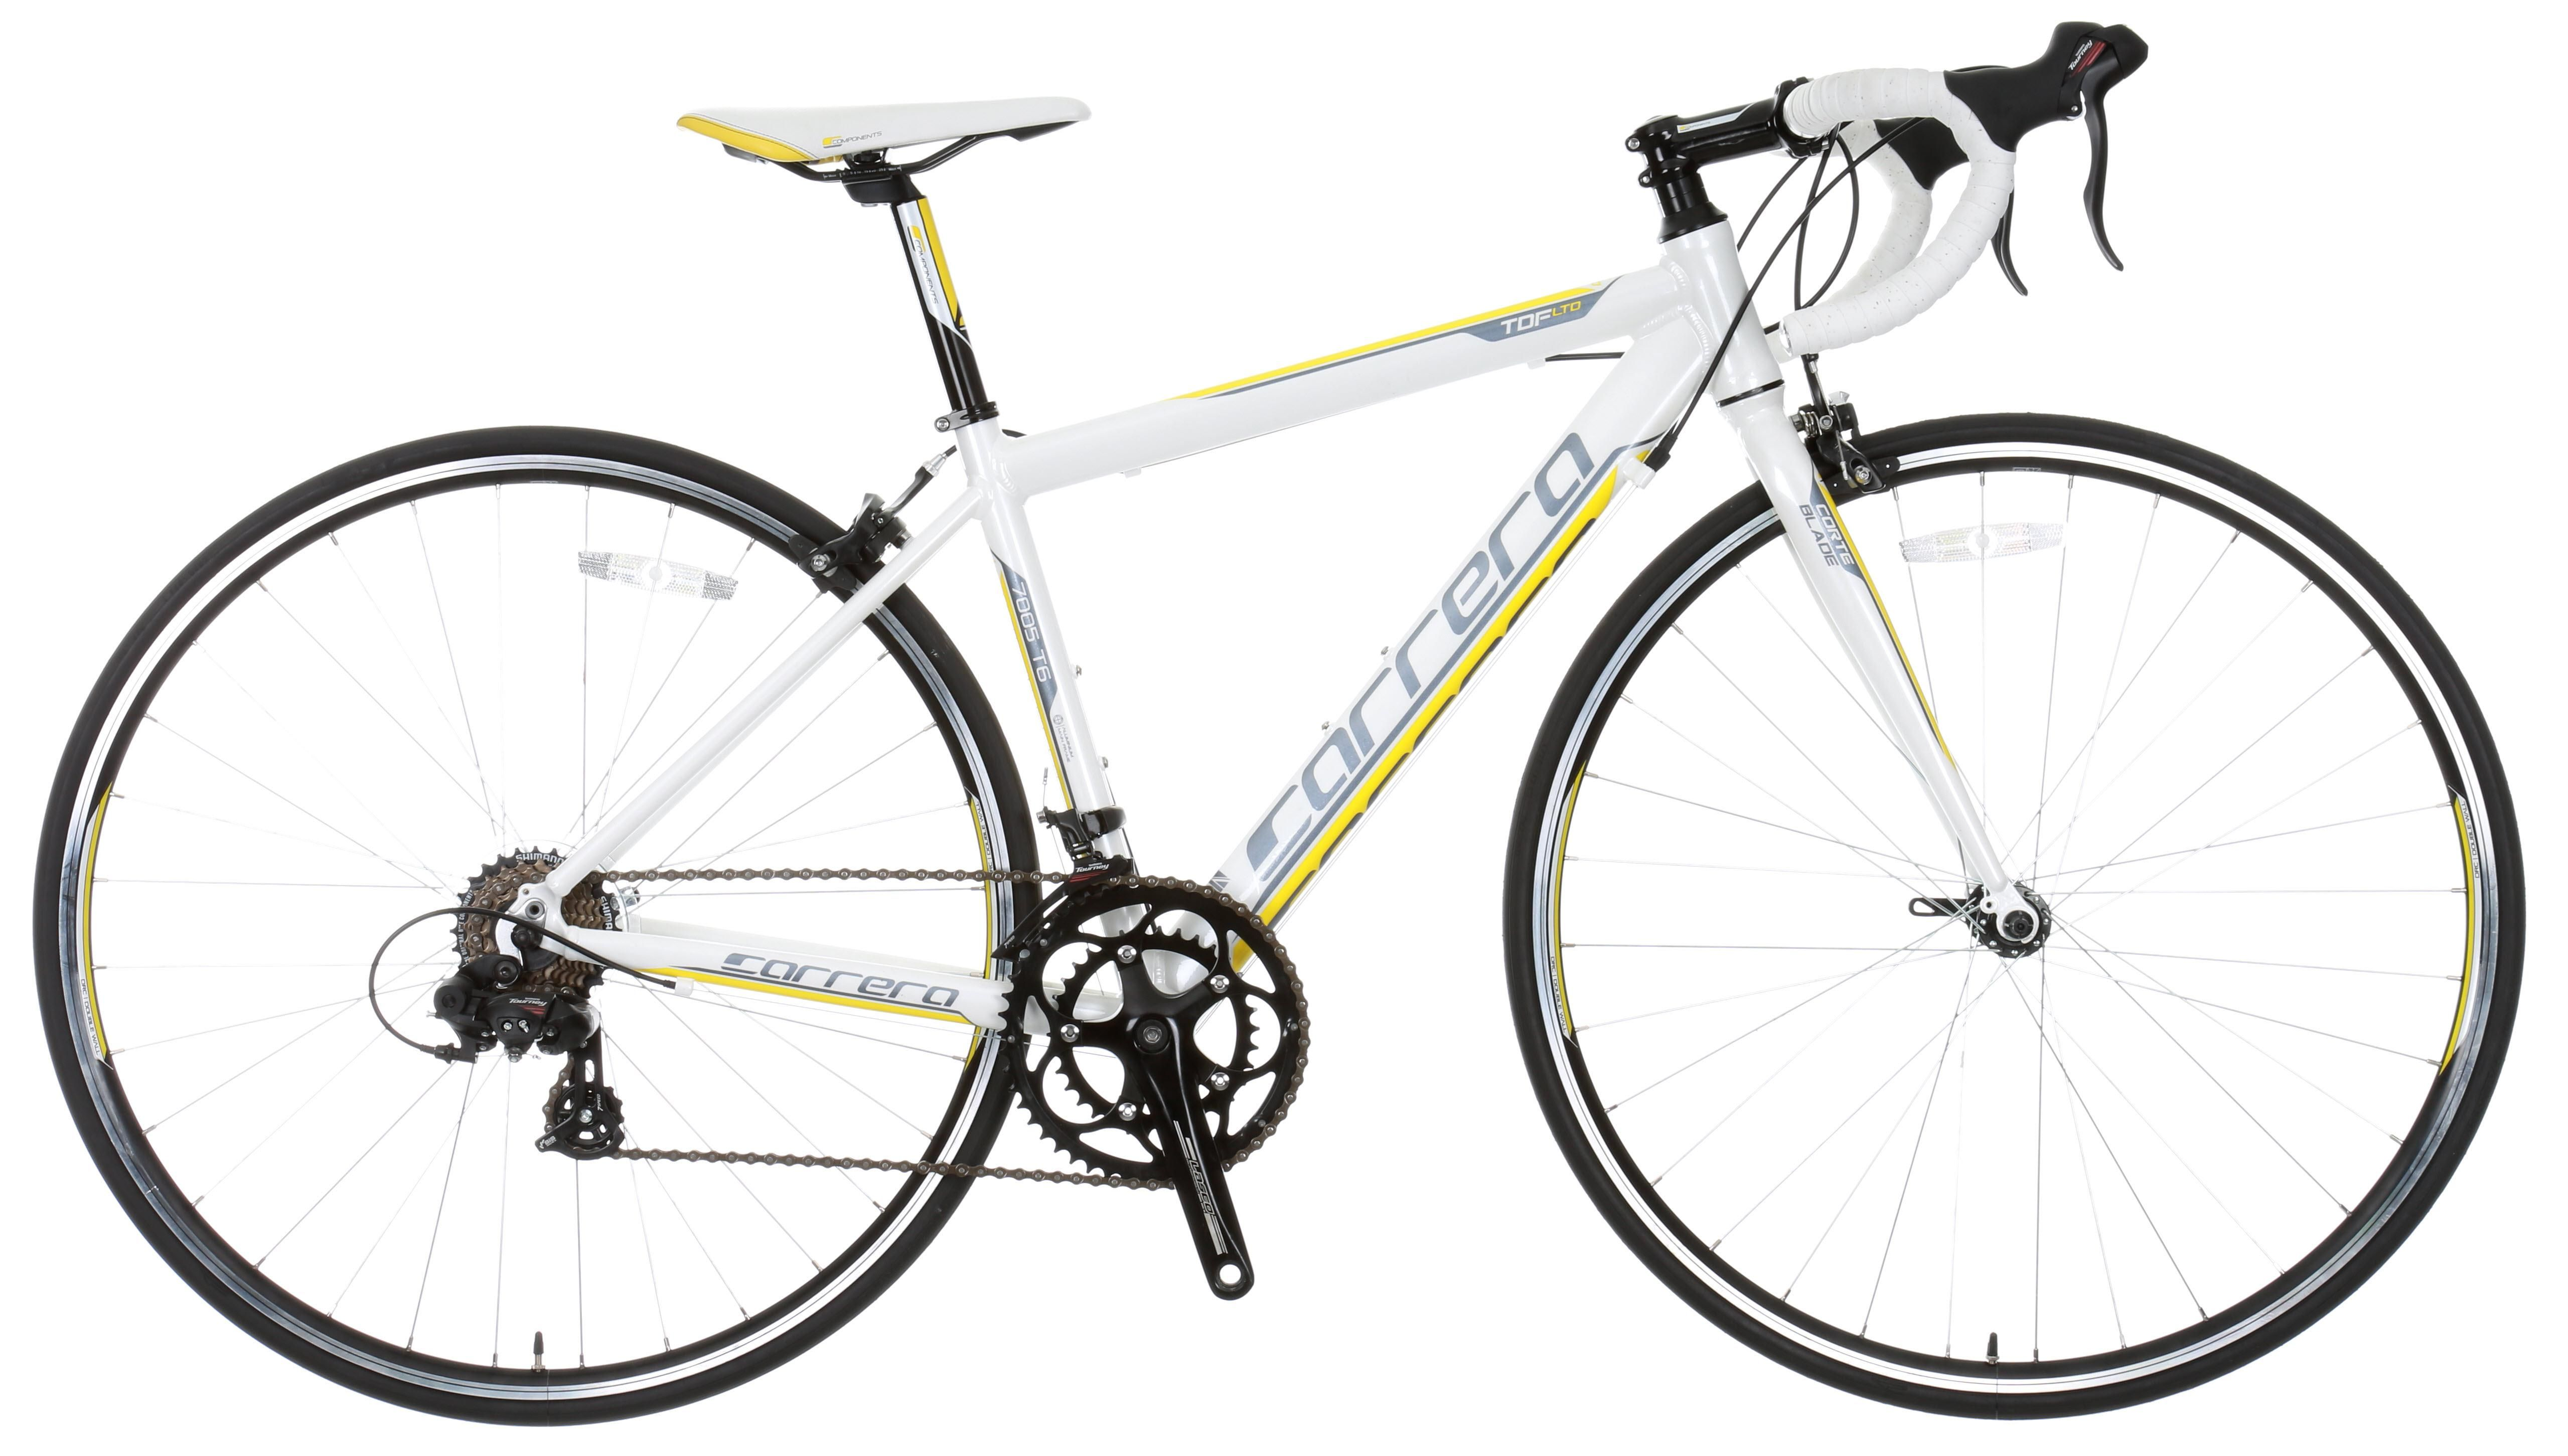 Road Bikes Don T Get Much Better Than The Carrera Tdf Limited